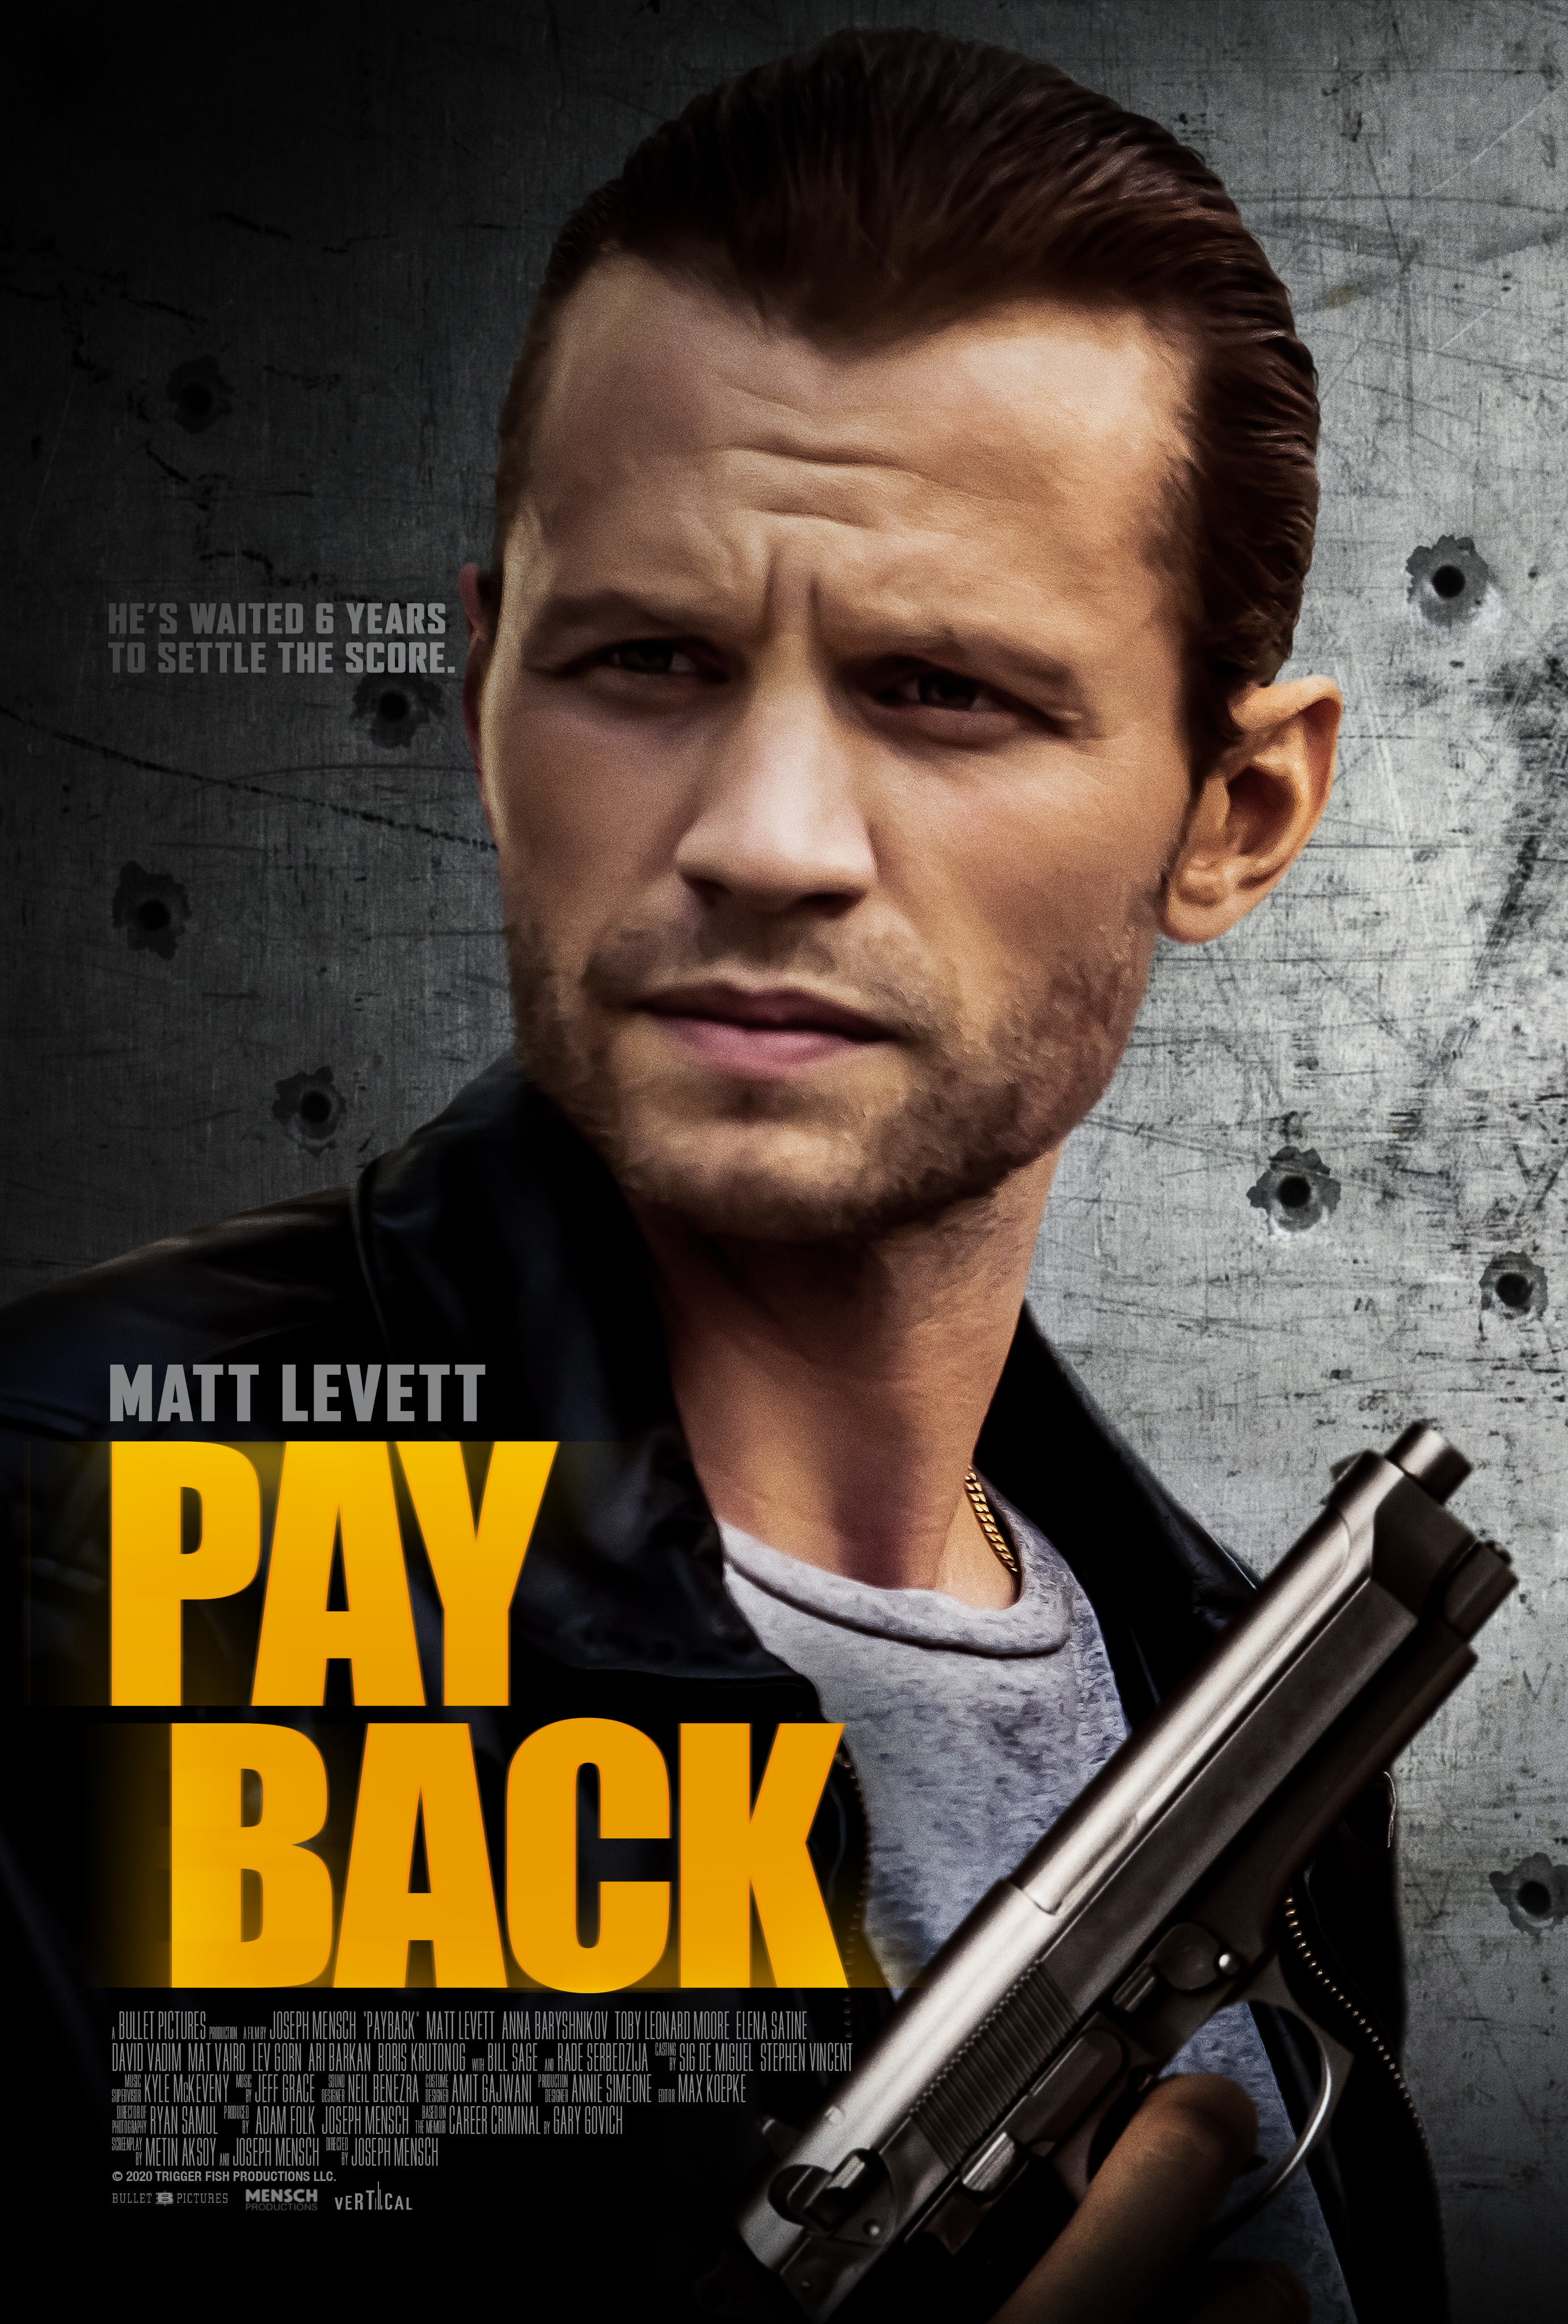 Payback (2021) Bengali Dubbed (Voice Over) WEBRip 720p [Full Movie] 1XBET